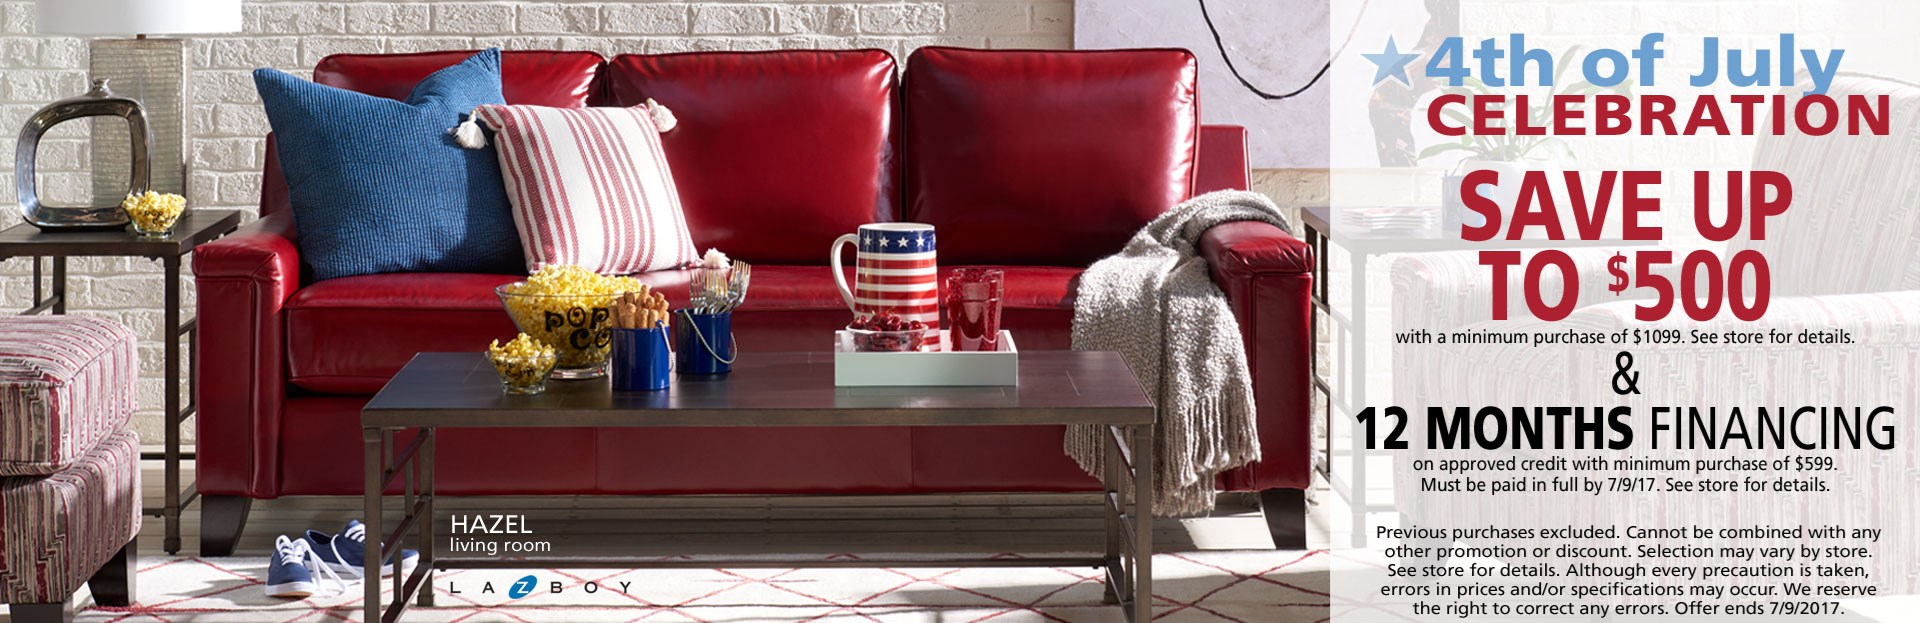 4th of July celebration; save up to $500 with minimum purchase of $1099. Special financing available. See store for details.